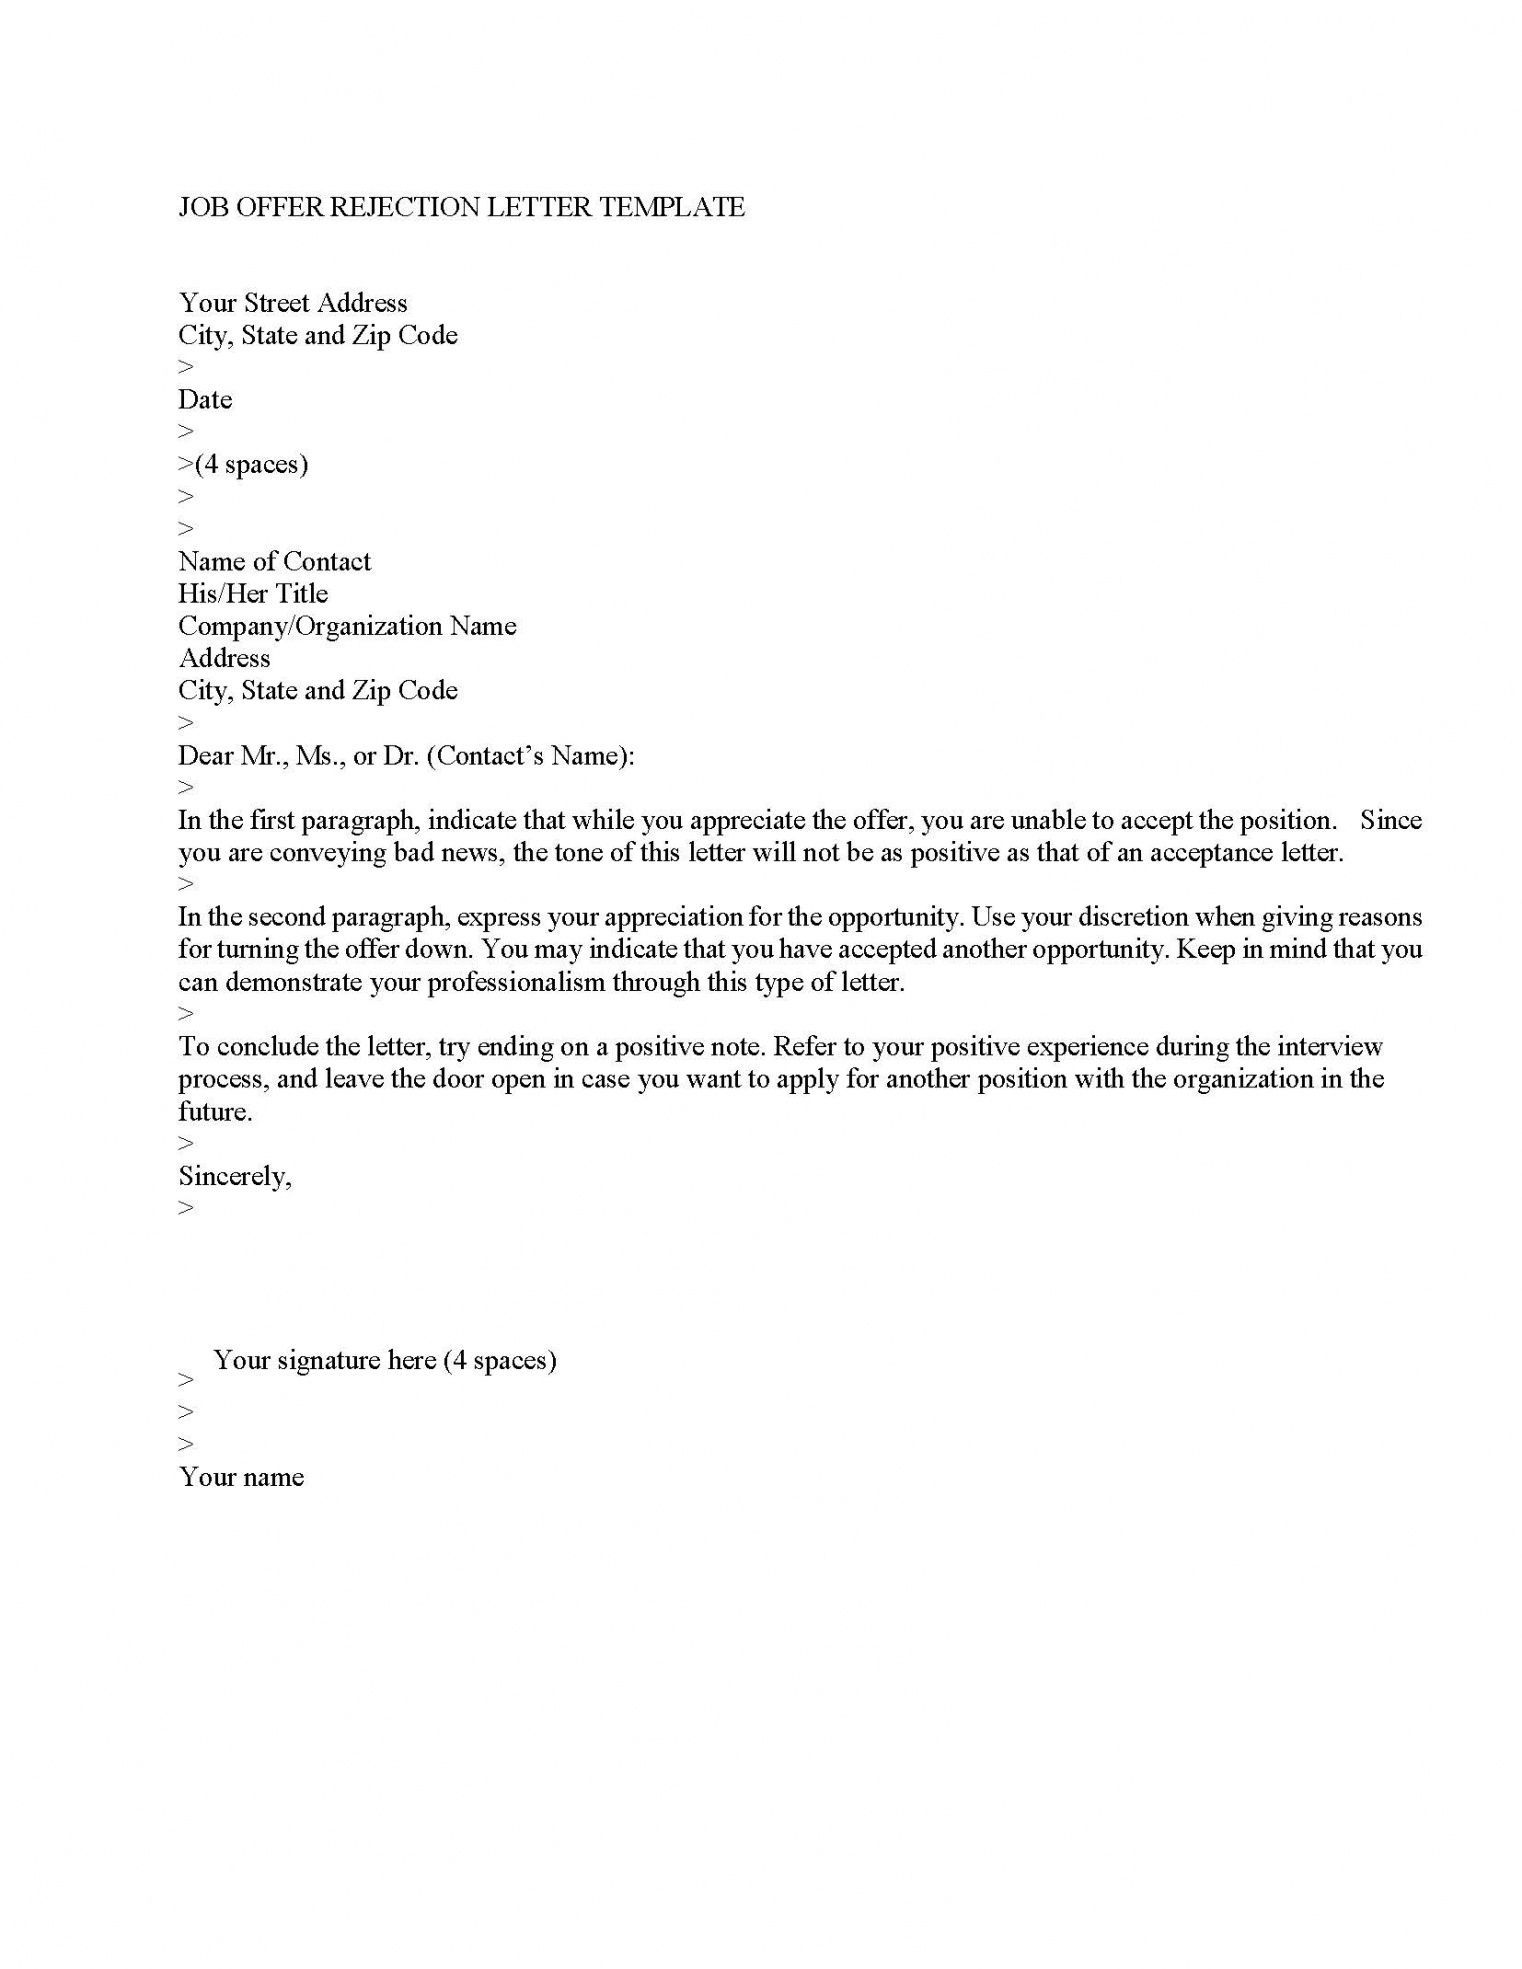 Browse Our Image of Rescind Resignation Letter Template in